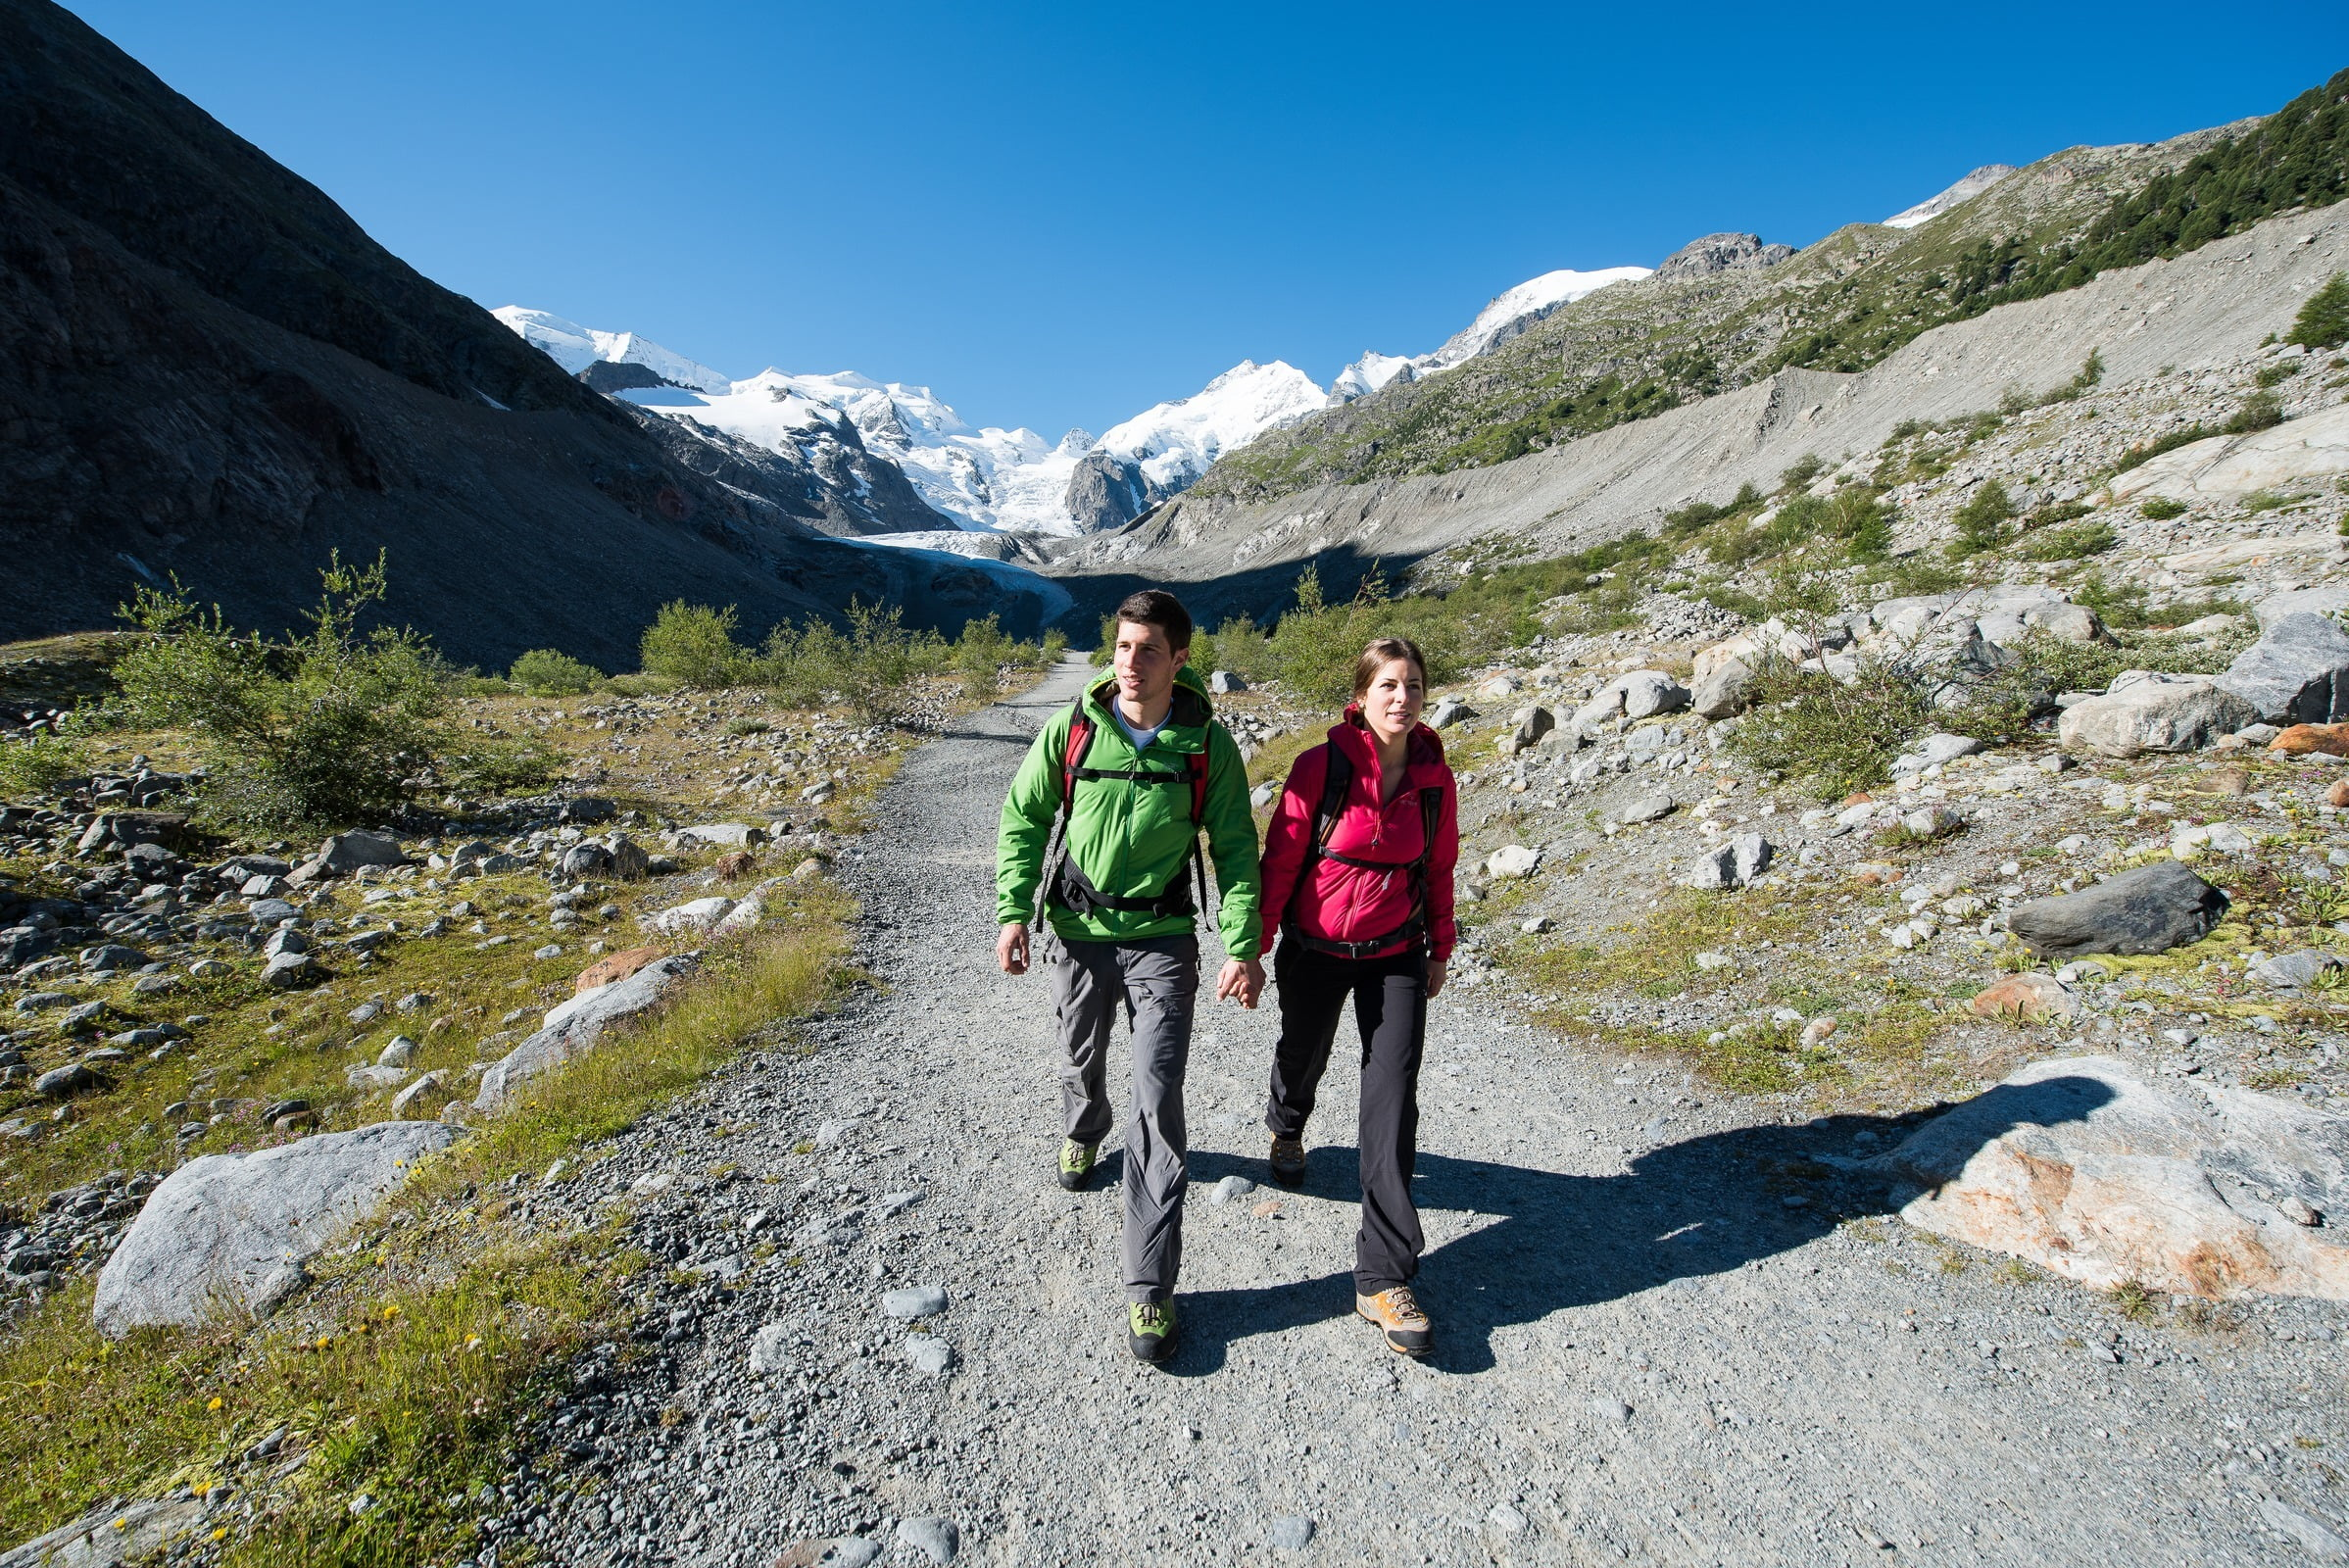 Glacierwalk Morteratsch